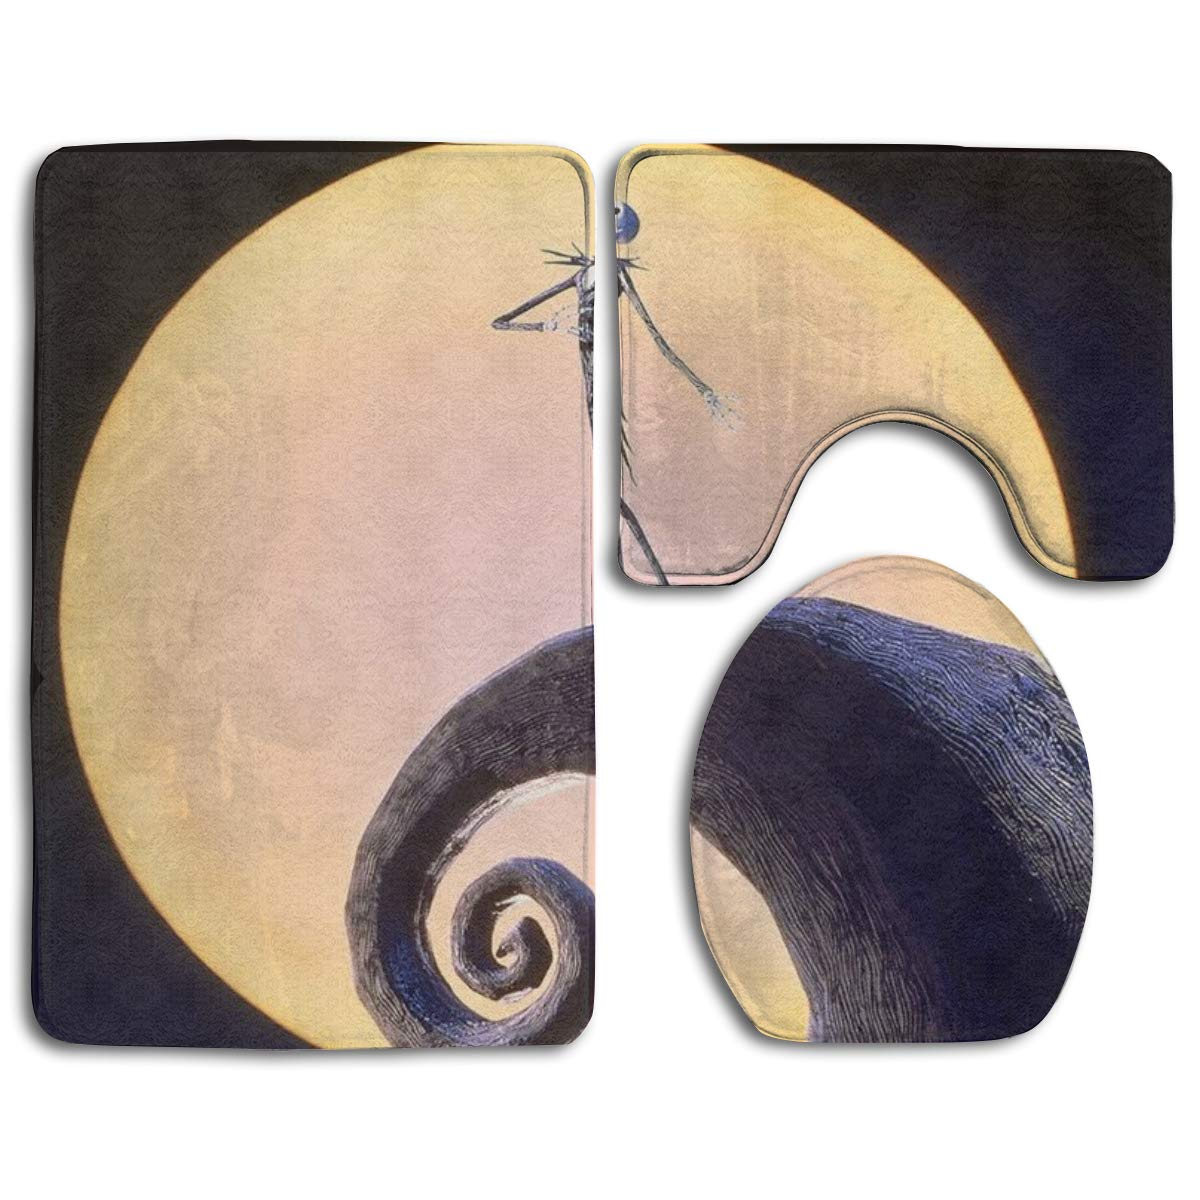 Erehome Nightmare Before Christmas 3 Piece Bathroom Rugs Set Bath Rug Contour Mat And Toilet Lid Cover